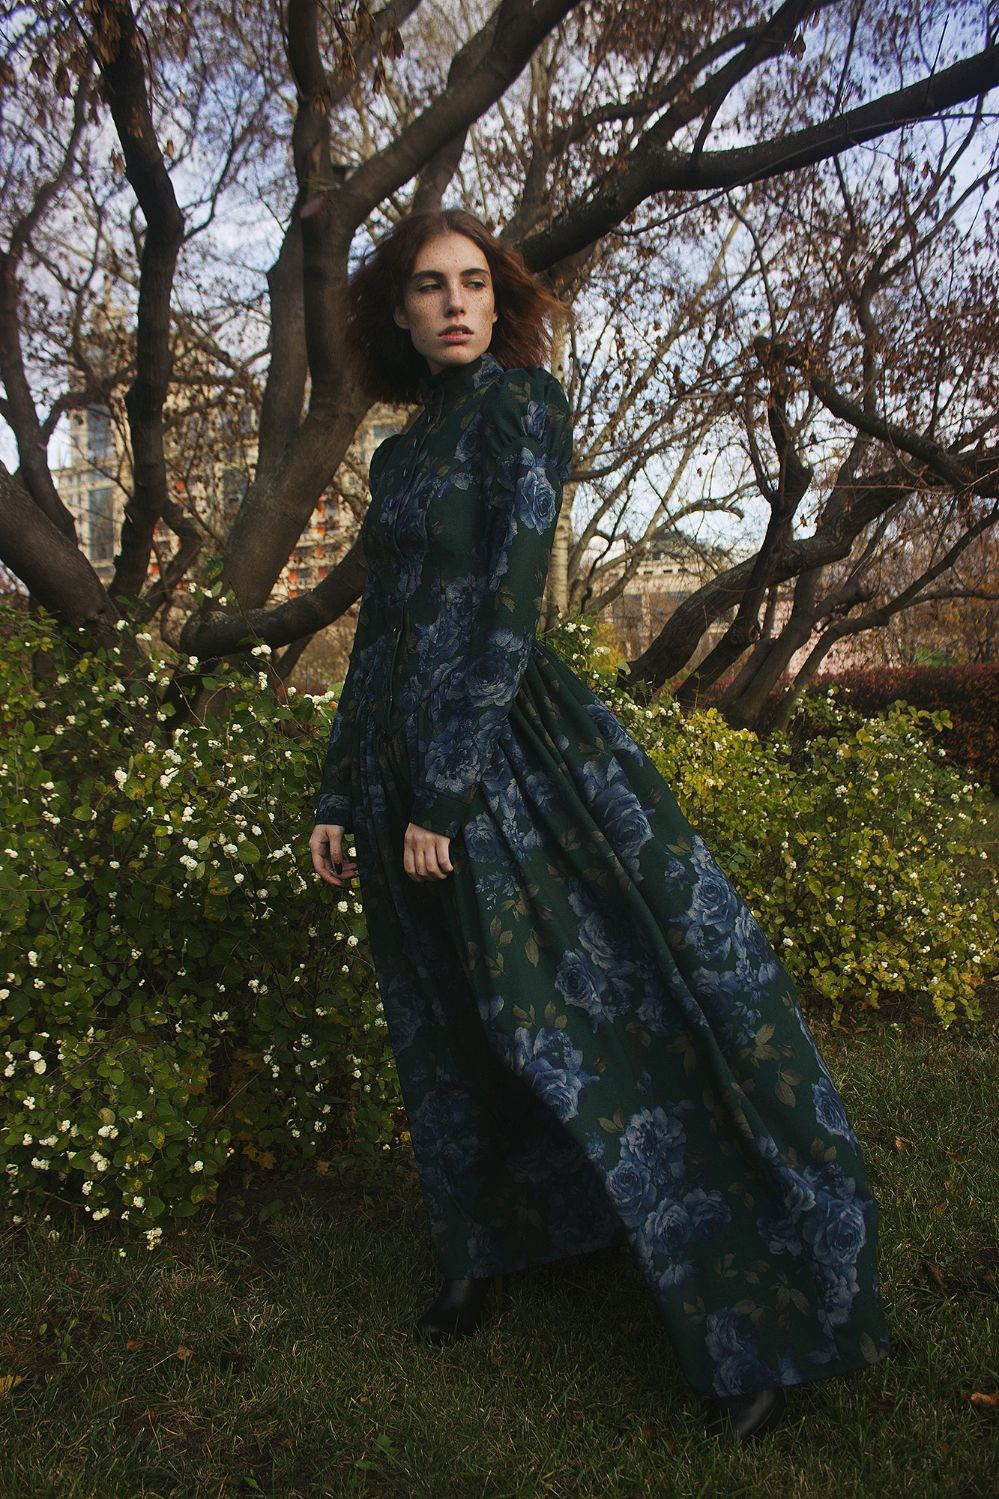 Women's dress in vintage style 'Poetry' winter garden, Dresses, Moscow,  Фото №1